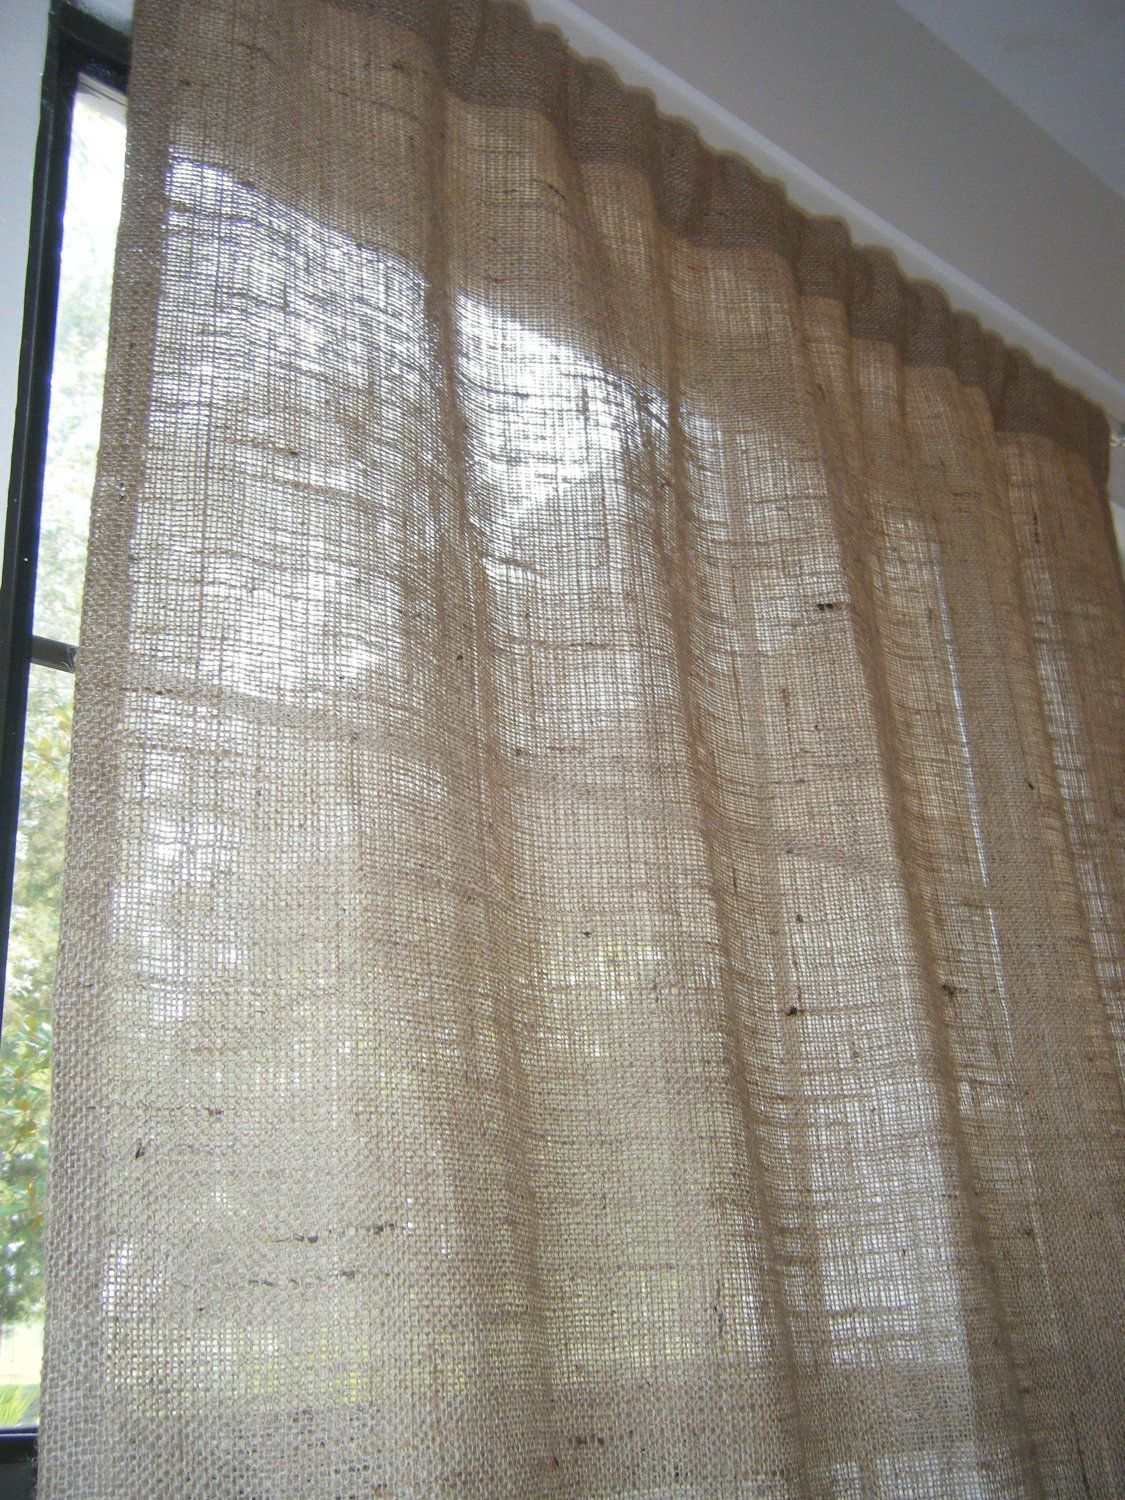 finally found a place on etsy with affordable burlap curtains for ...